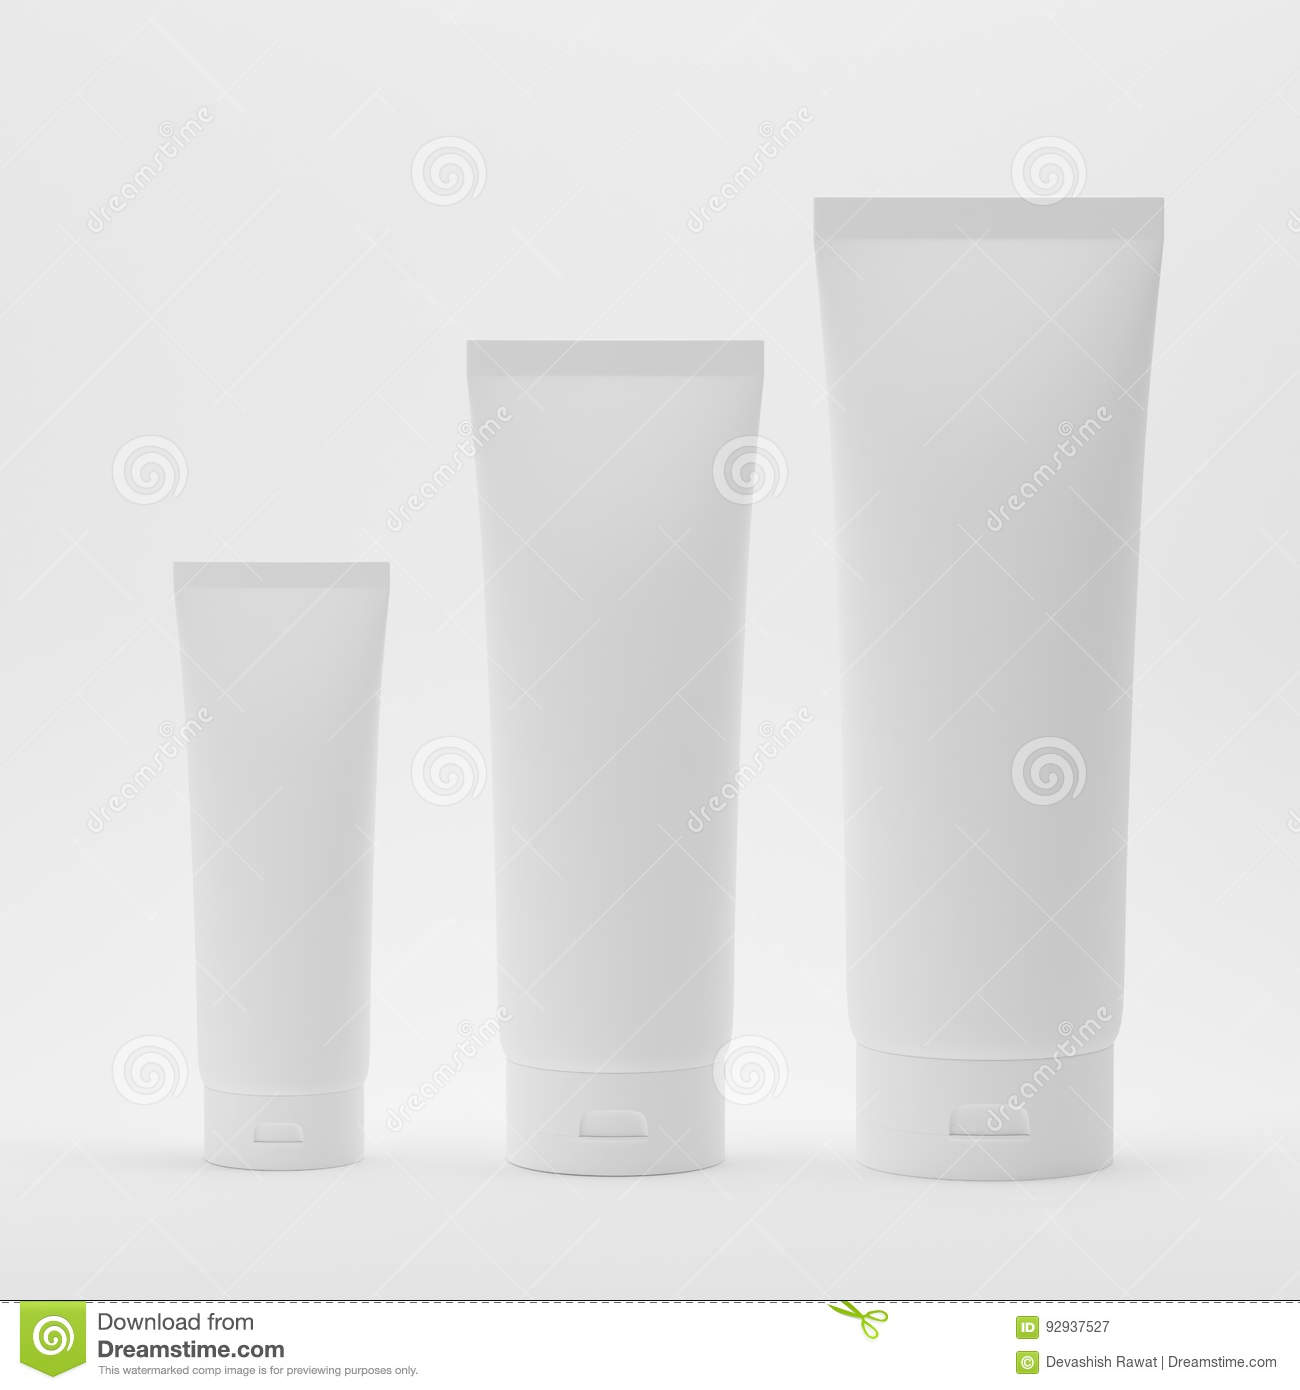 Blank White Plastic Tube For Cosmetic Body Wash Shampoo Face Wash